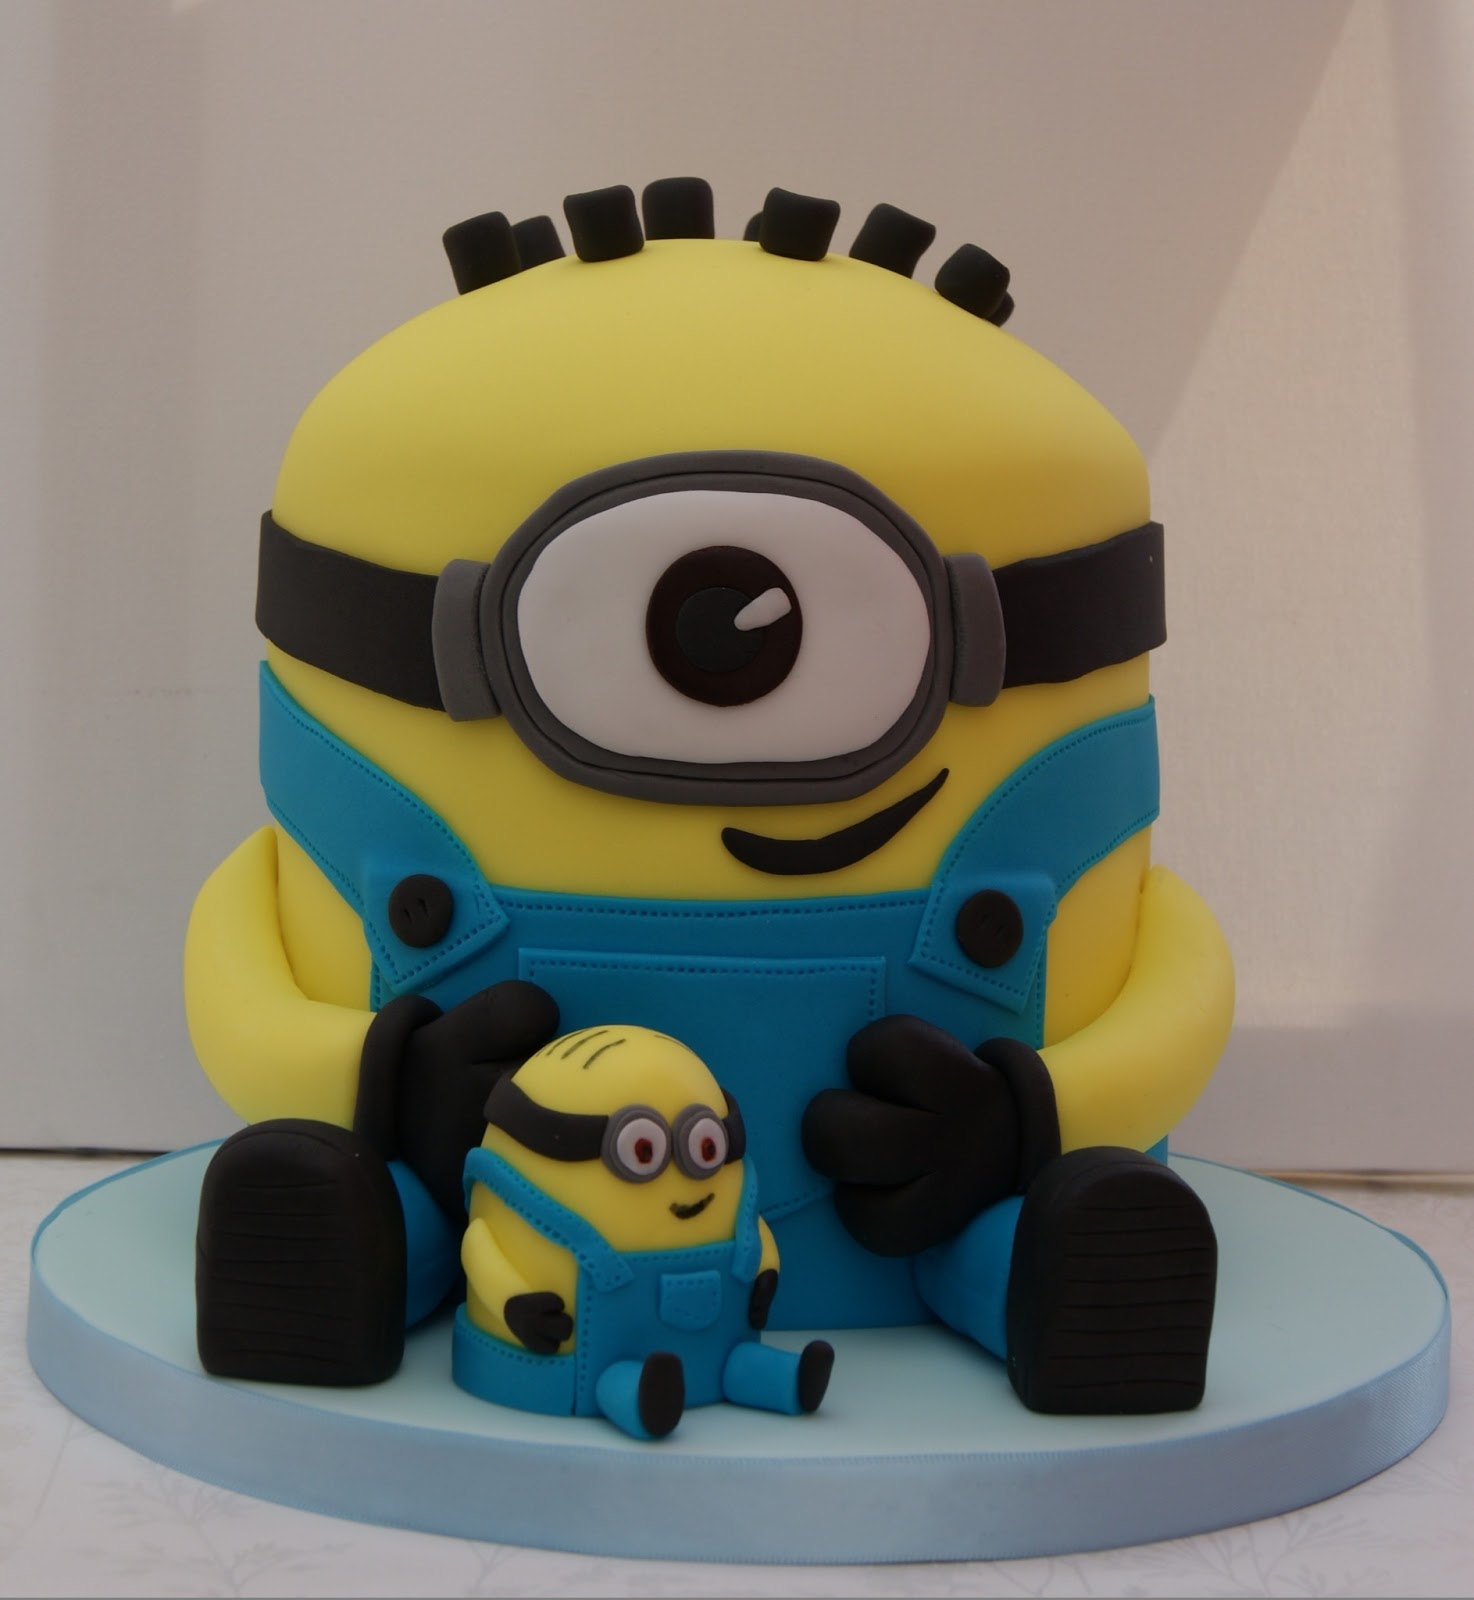 Cake Images Of Minions : Crazy Foods: Minions Cakes and Cupcakes Ideas